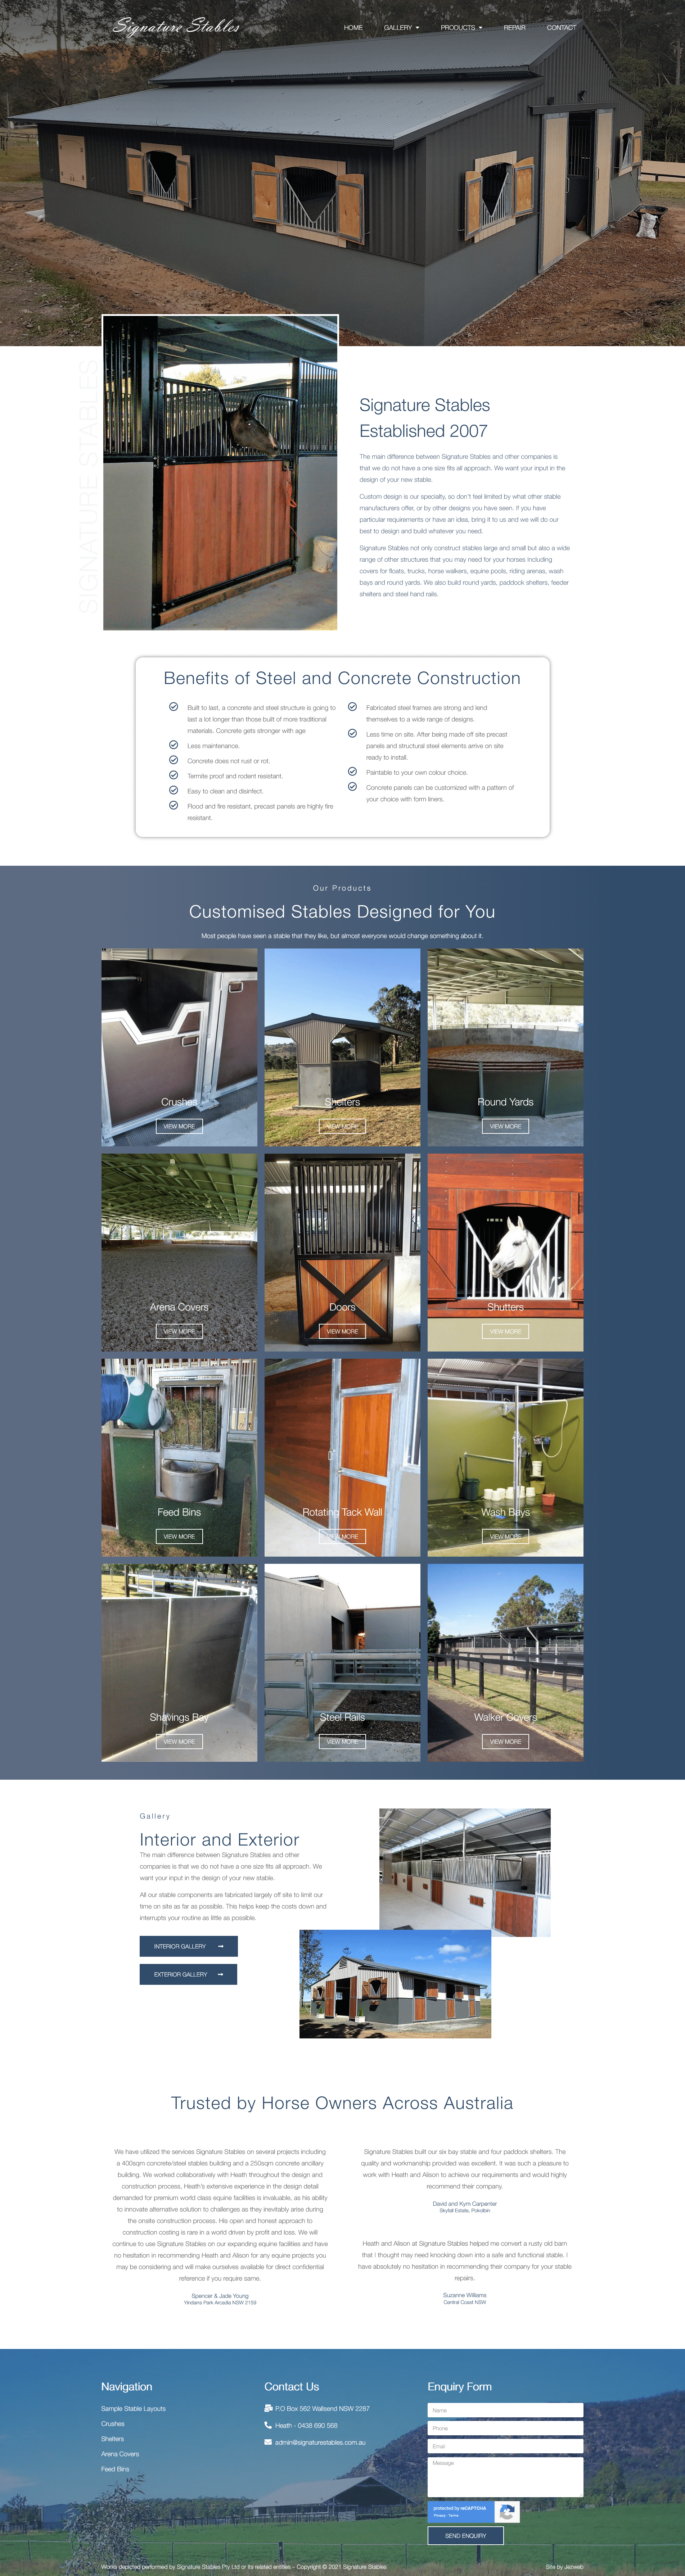 Signature Stables -